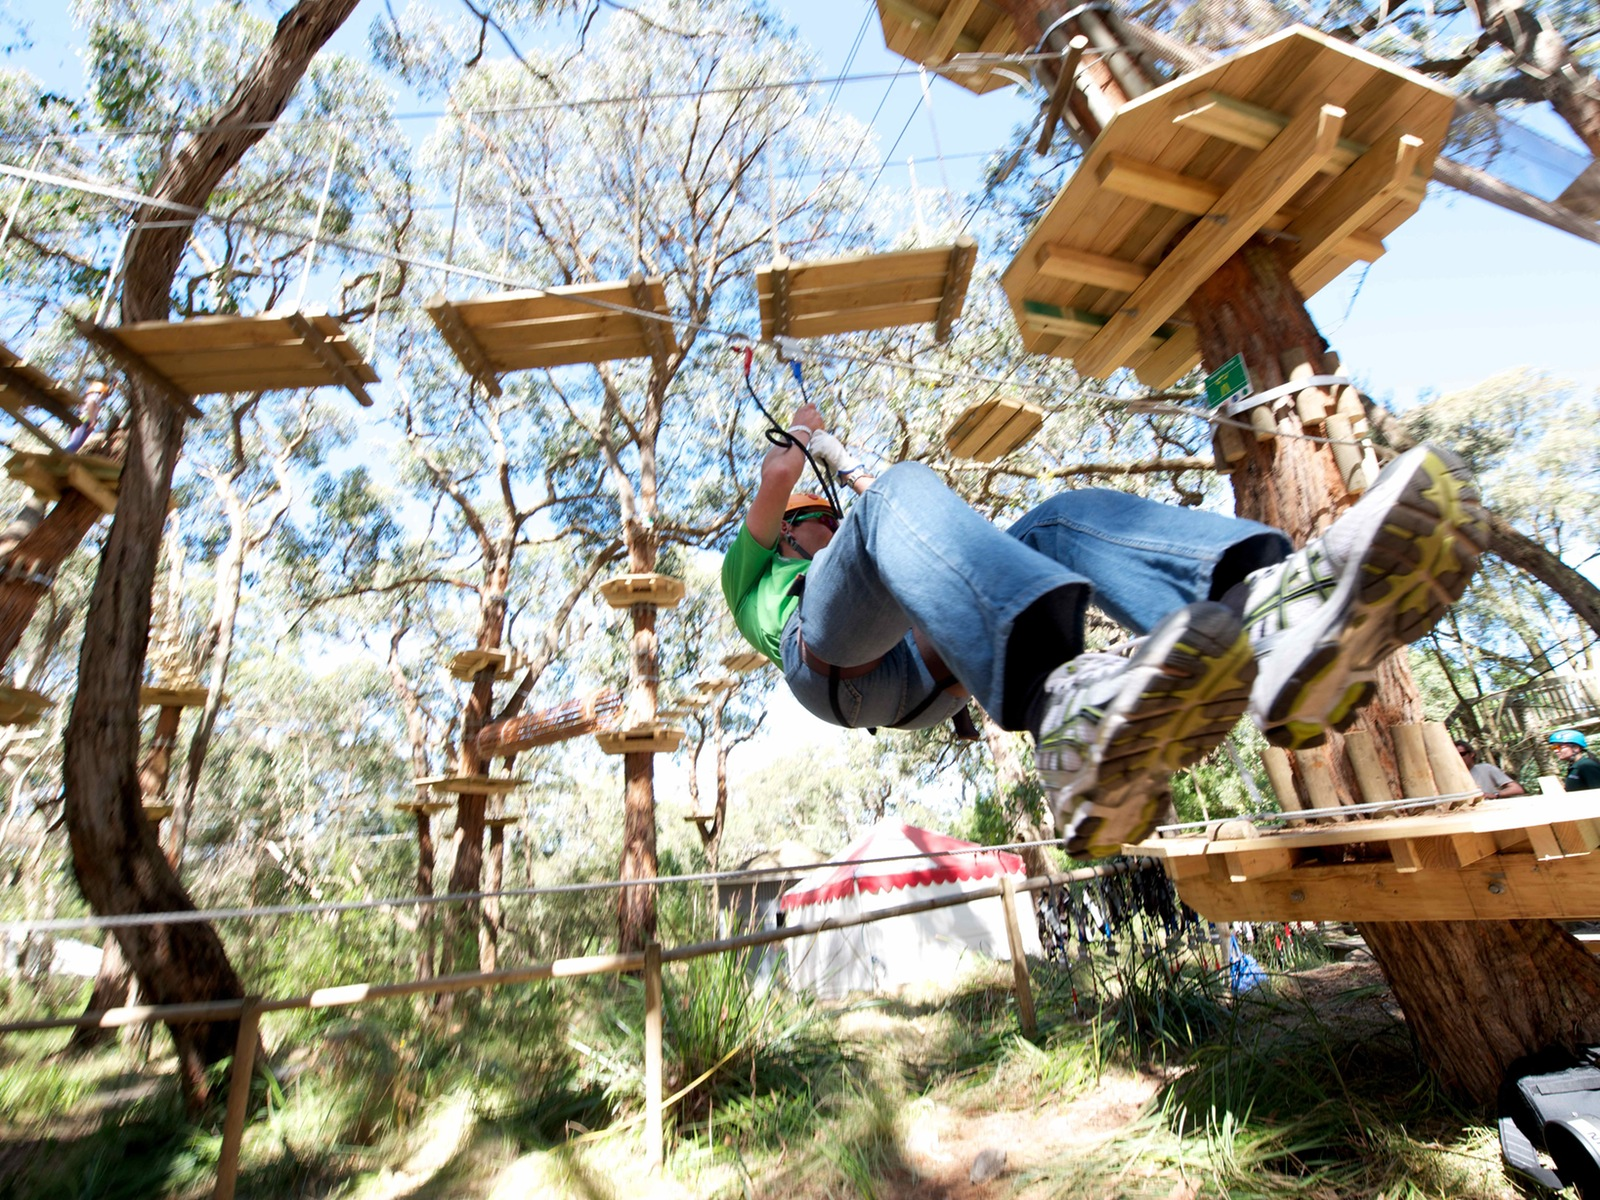 Tree Surfing at the Enchanted Adventure Garden